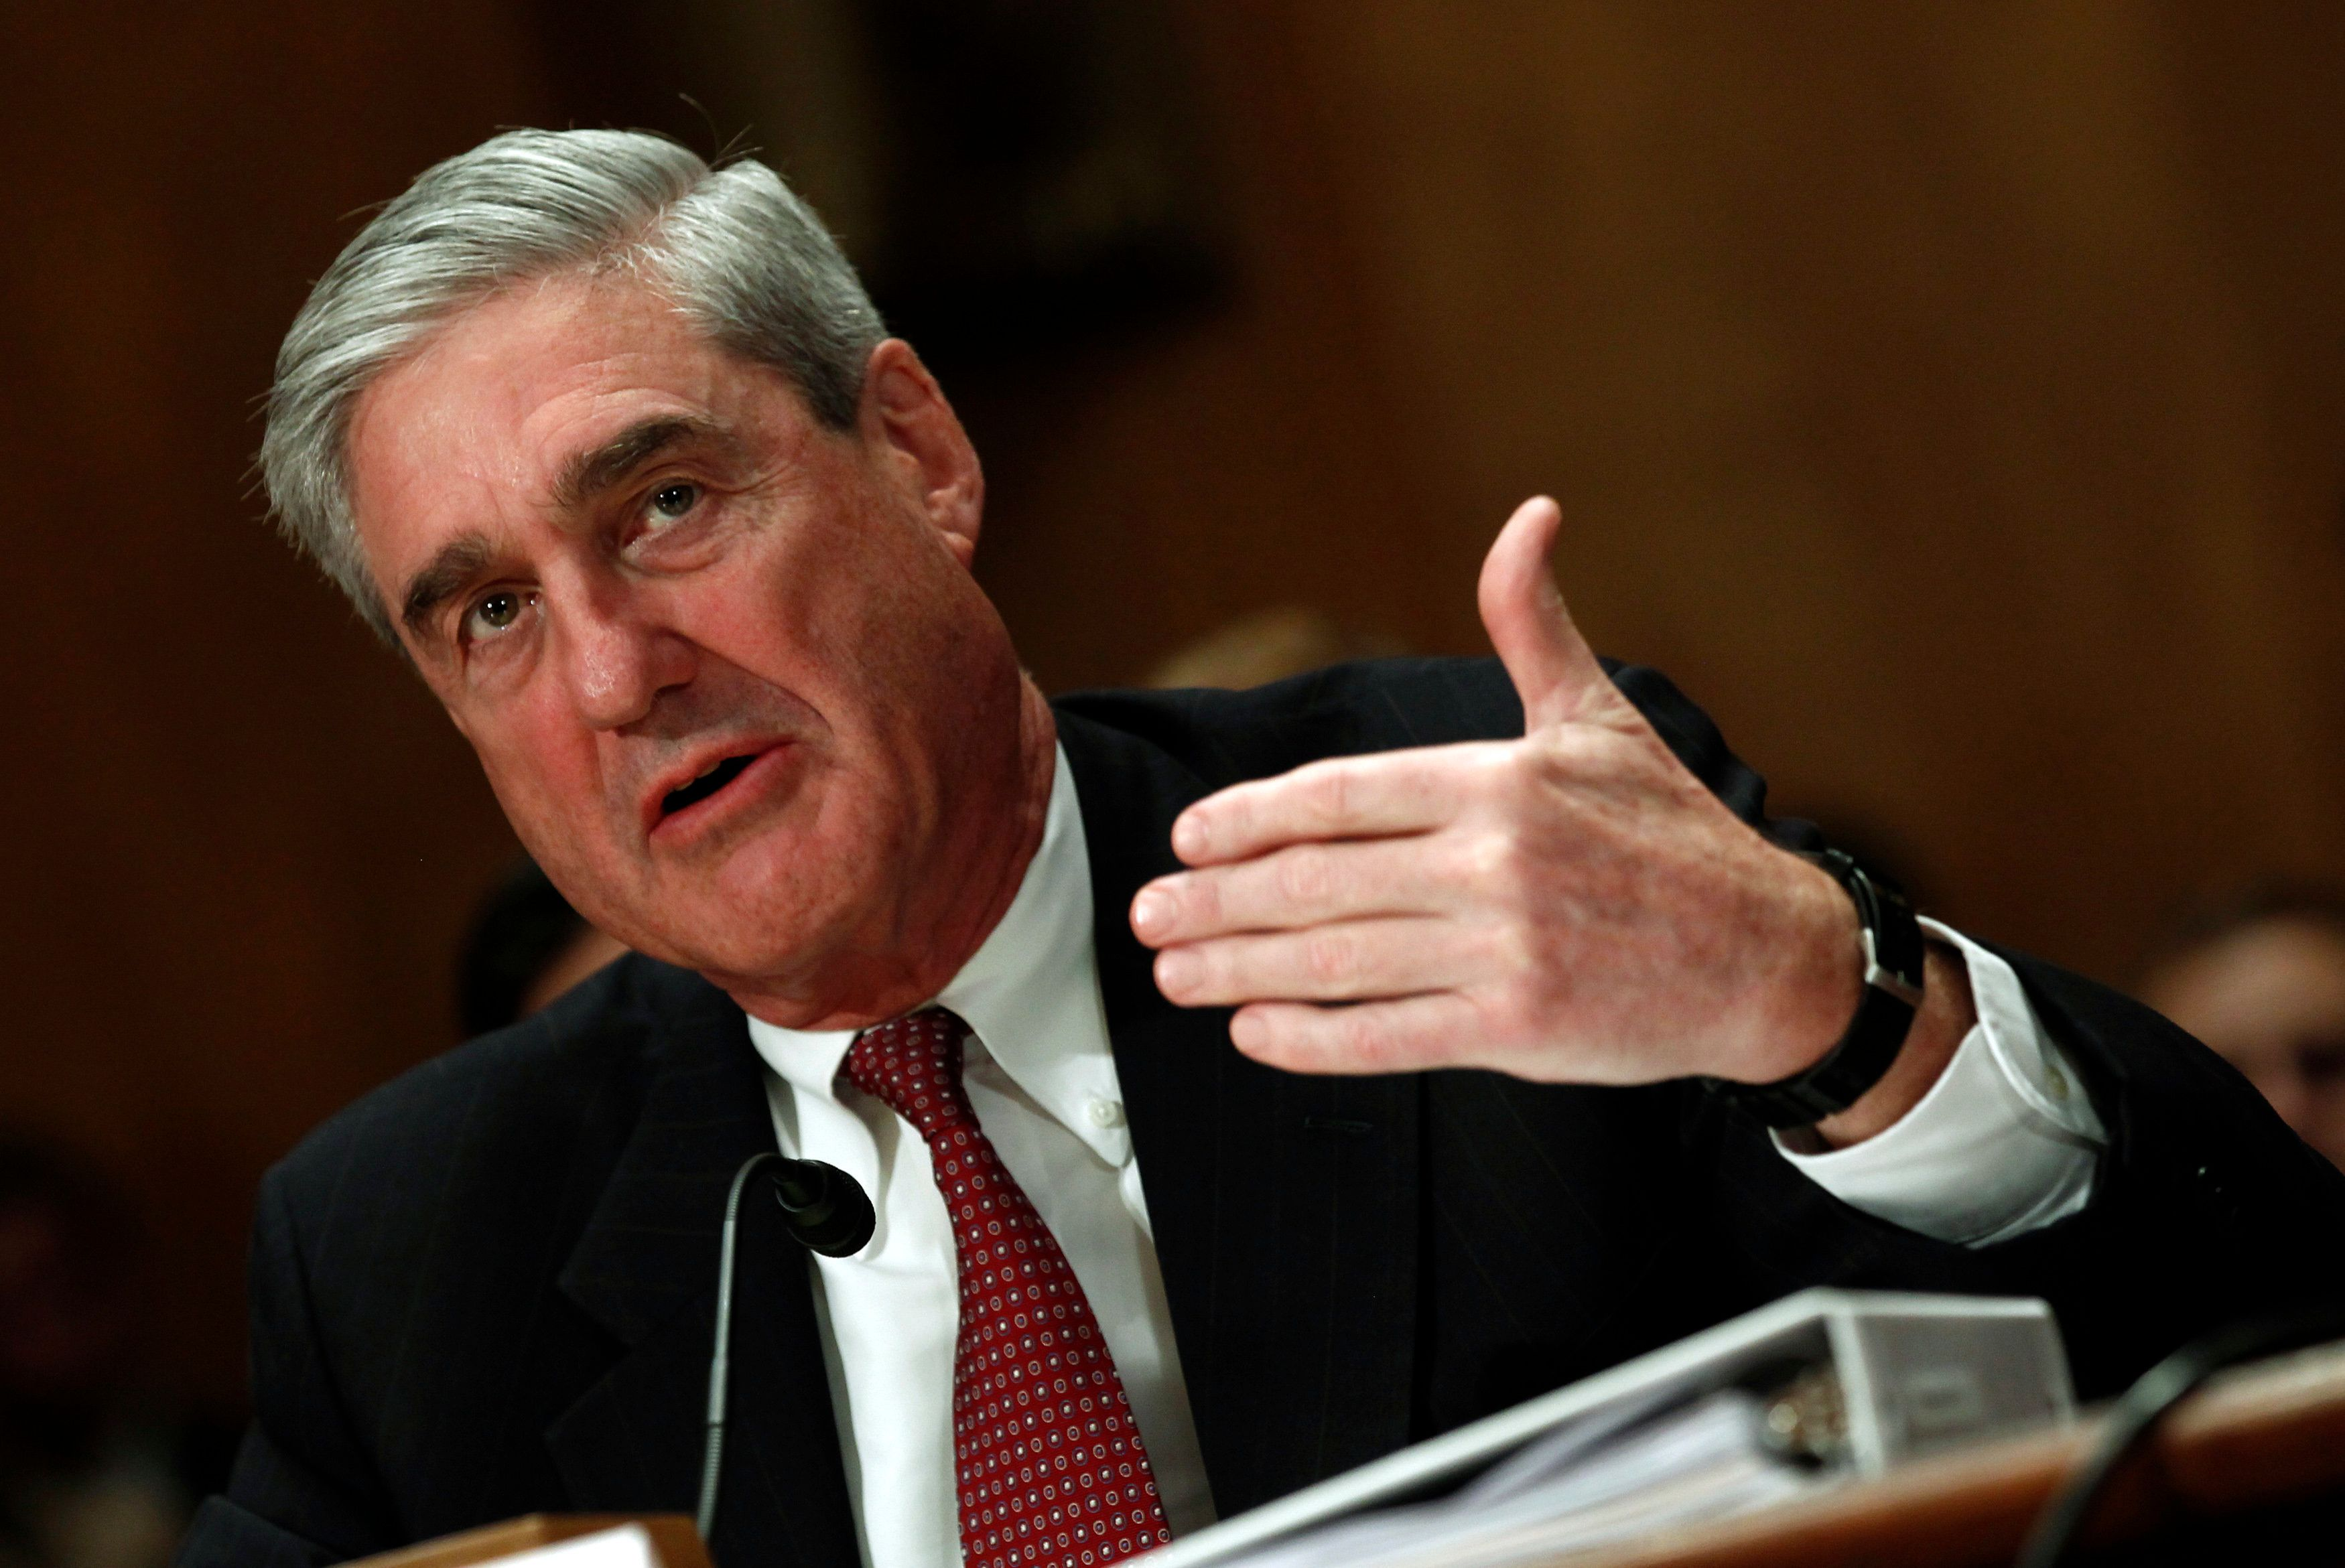 Facebook reportedly gave election ad data to Robert Mueller, the special counsel in charge of investigating alleged Russian i